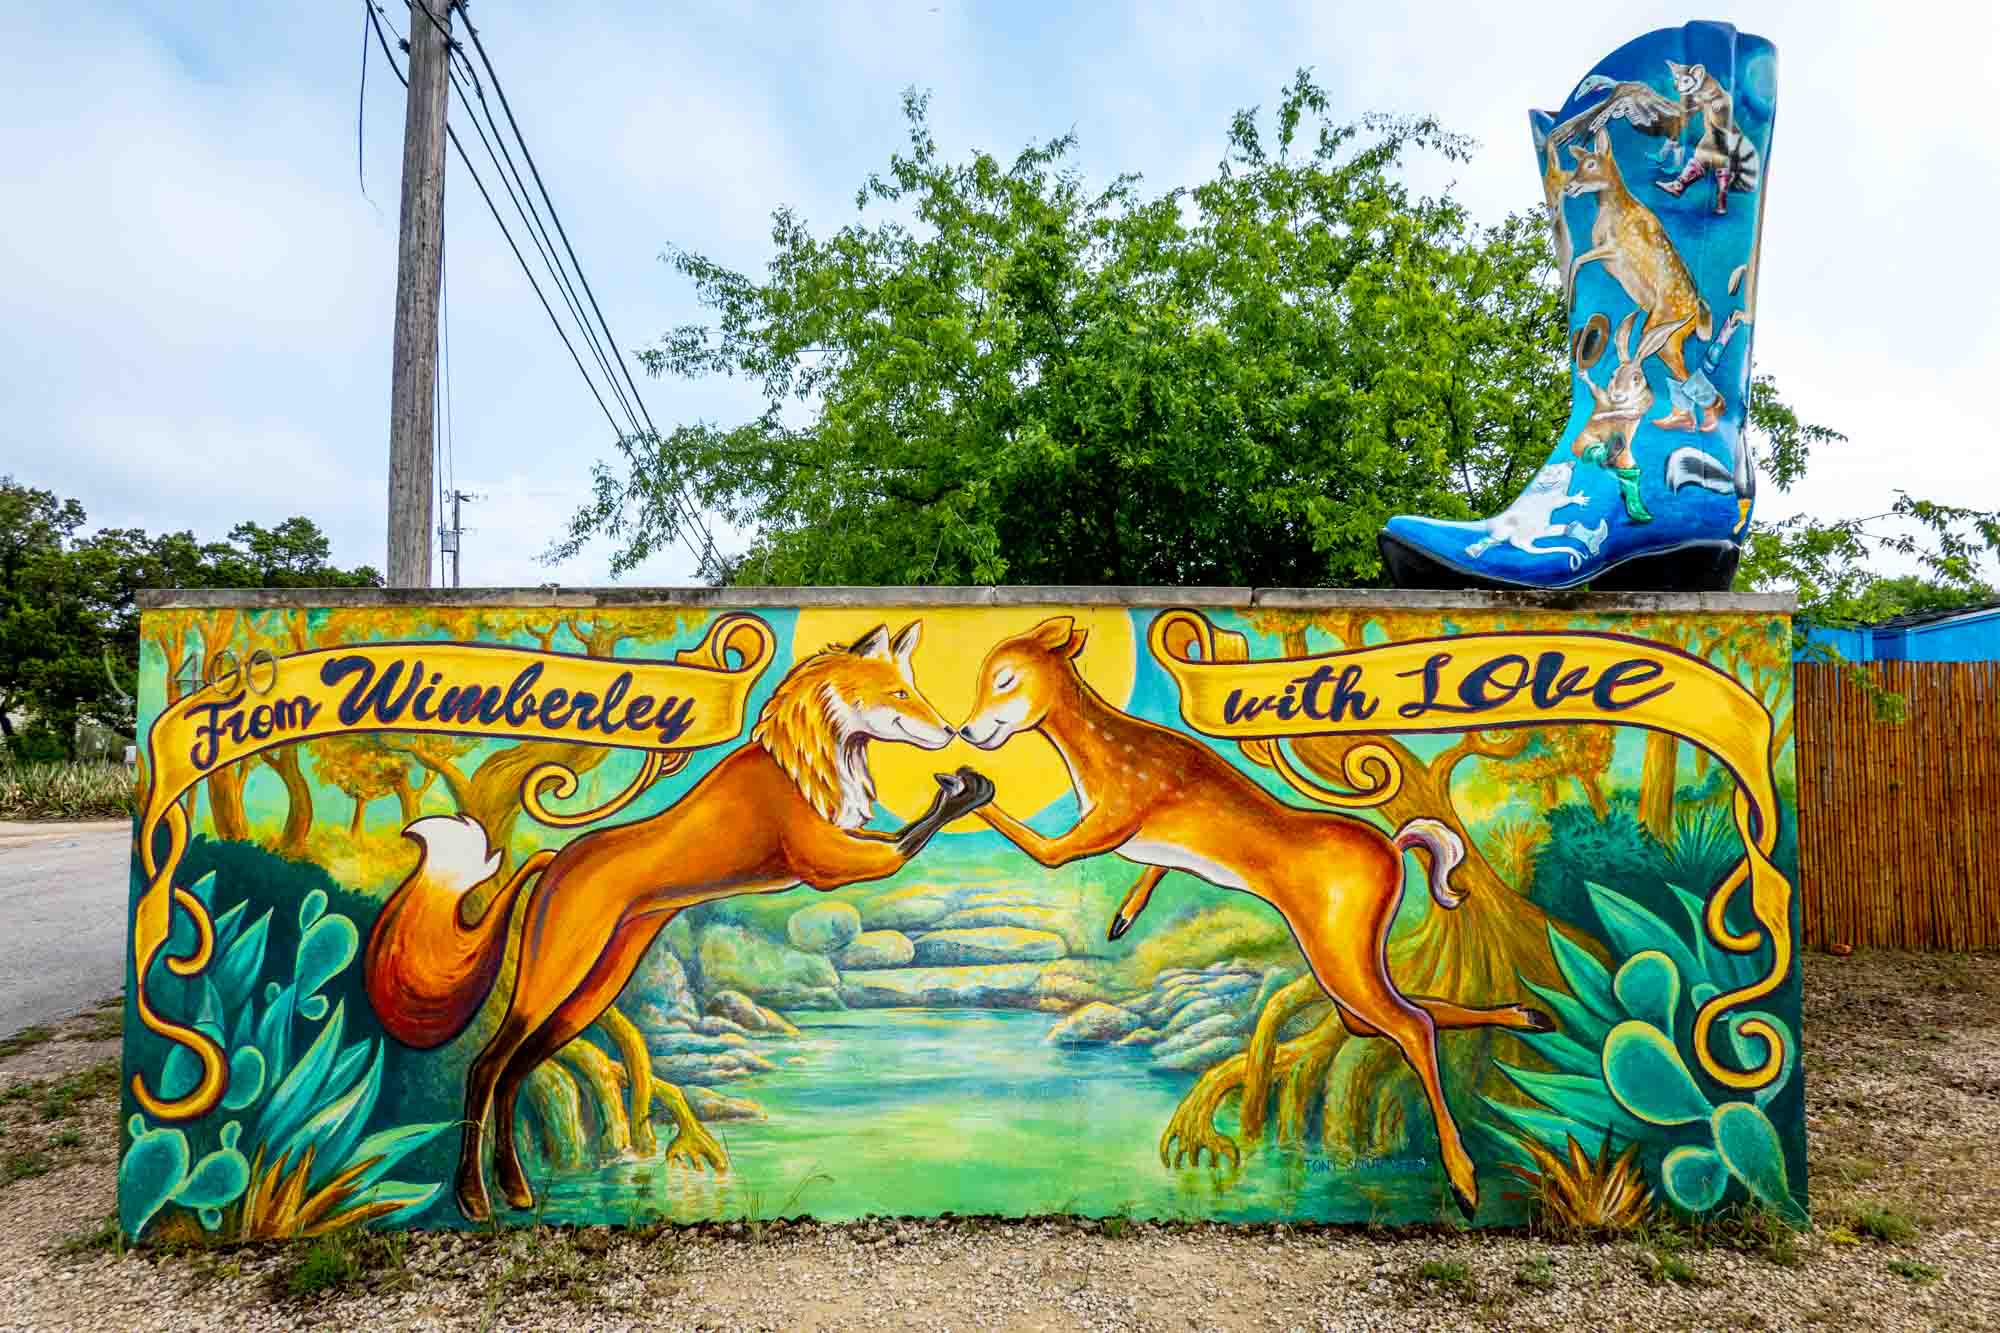 """Mural of a fox and deer clasping paws under a banner that says """"From Wimberley with Love"""""""